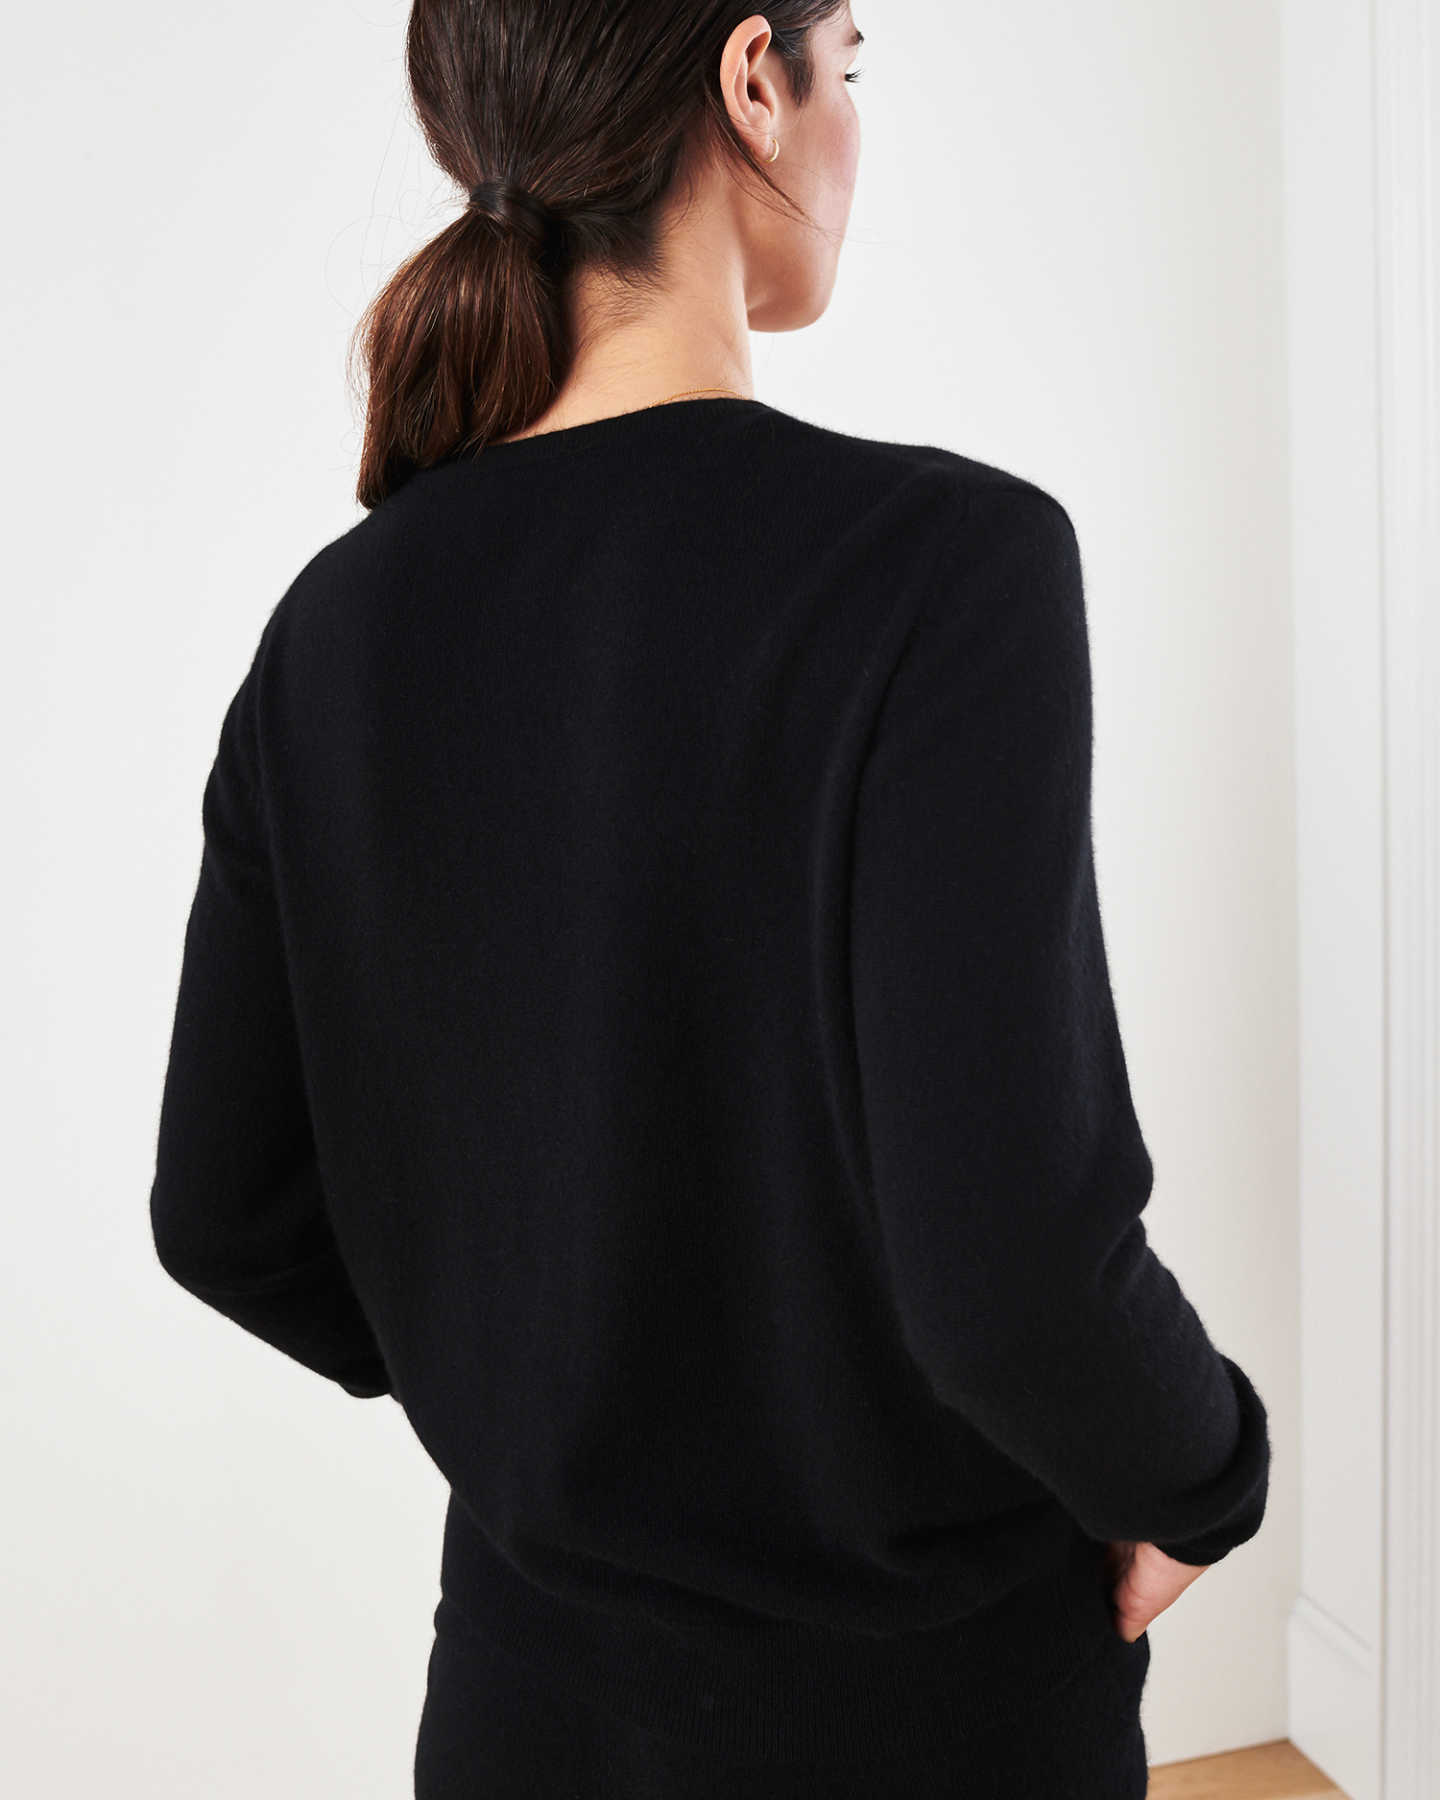 Woman wearing black cashmere cardigan sweater and black cashmere sweatpants behind